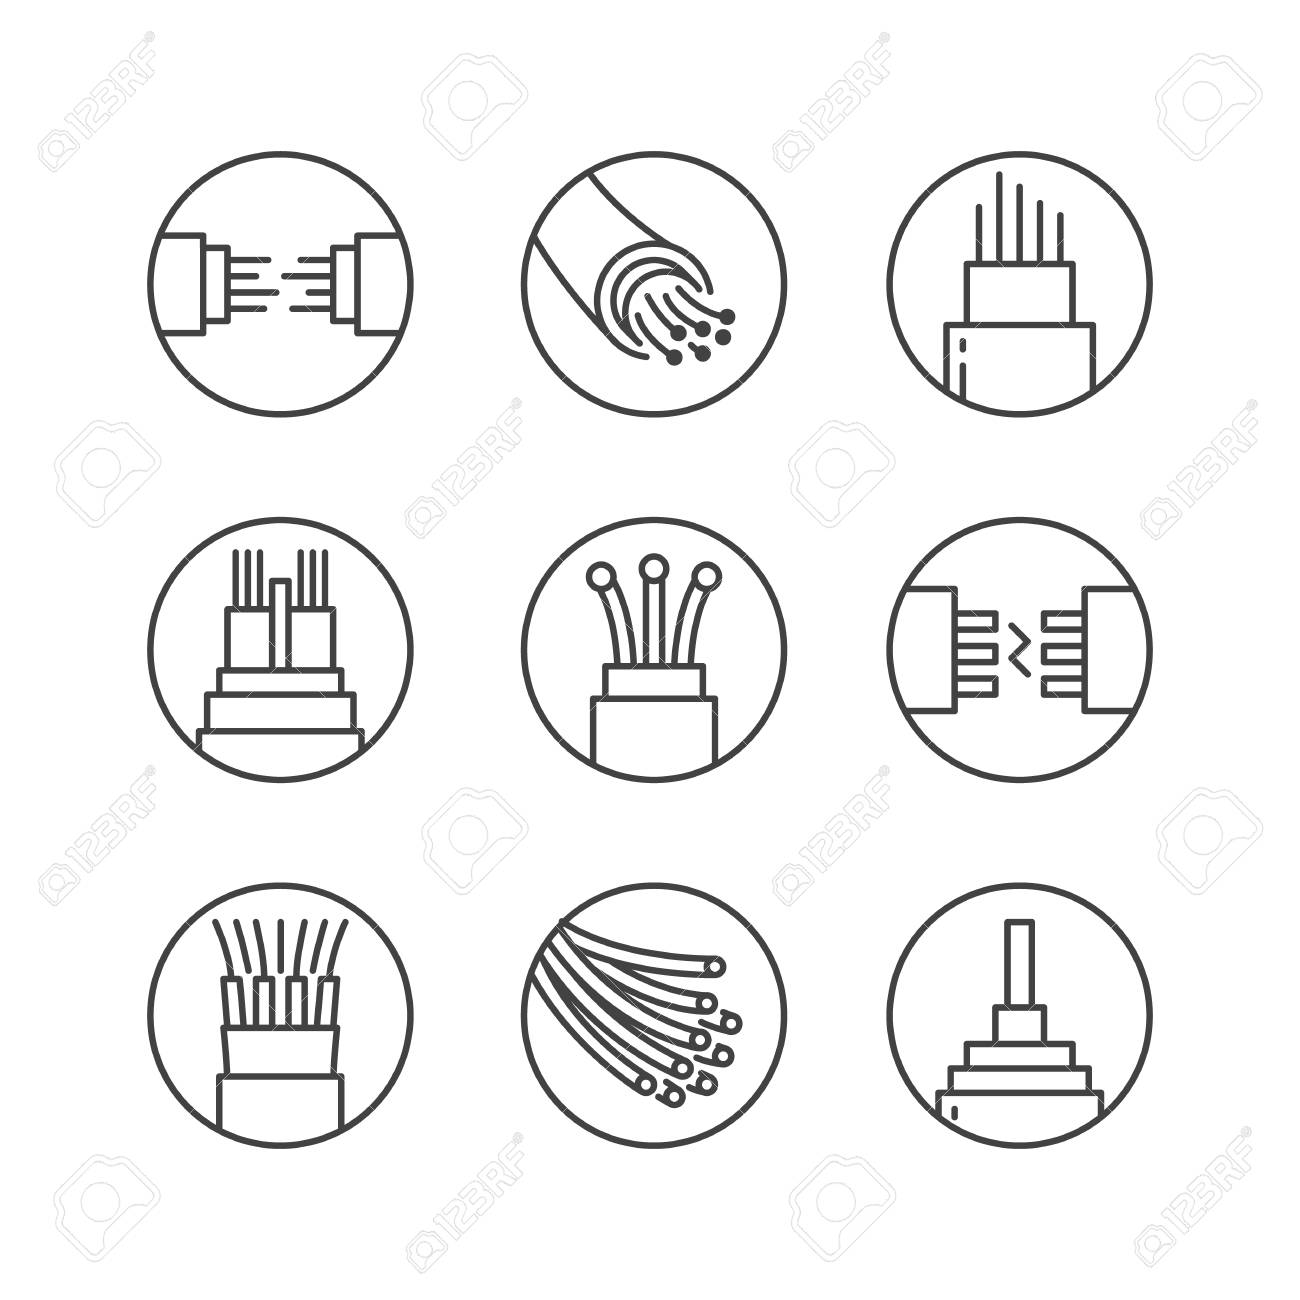 Optical fiber flat line vector icons. Network connection, computer wire, cable bobbin, data transfer. Thin signs in circle shapes for electronics store, internet services. - 106301160